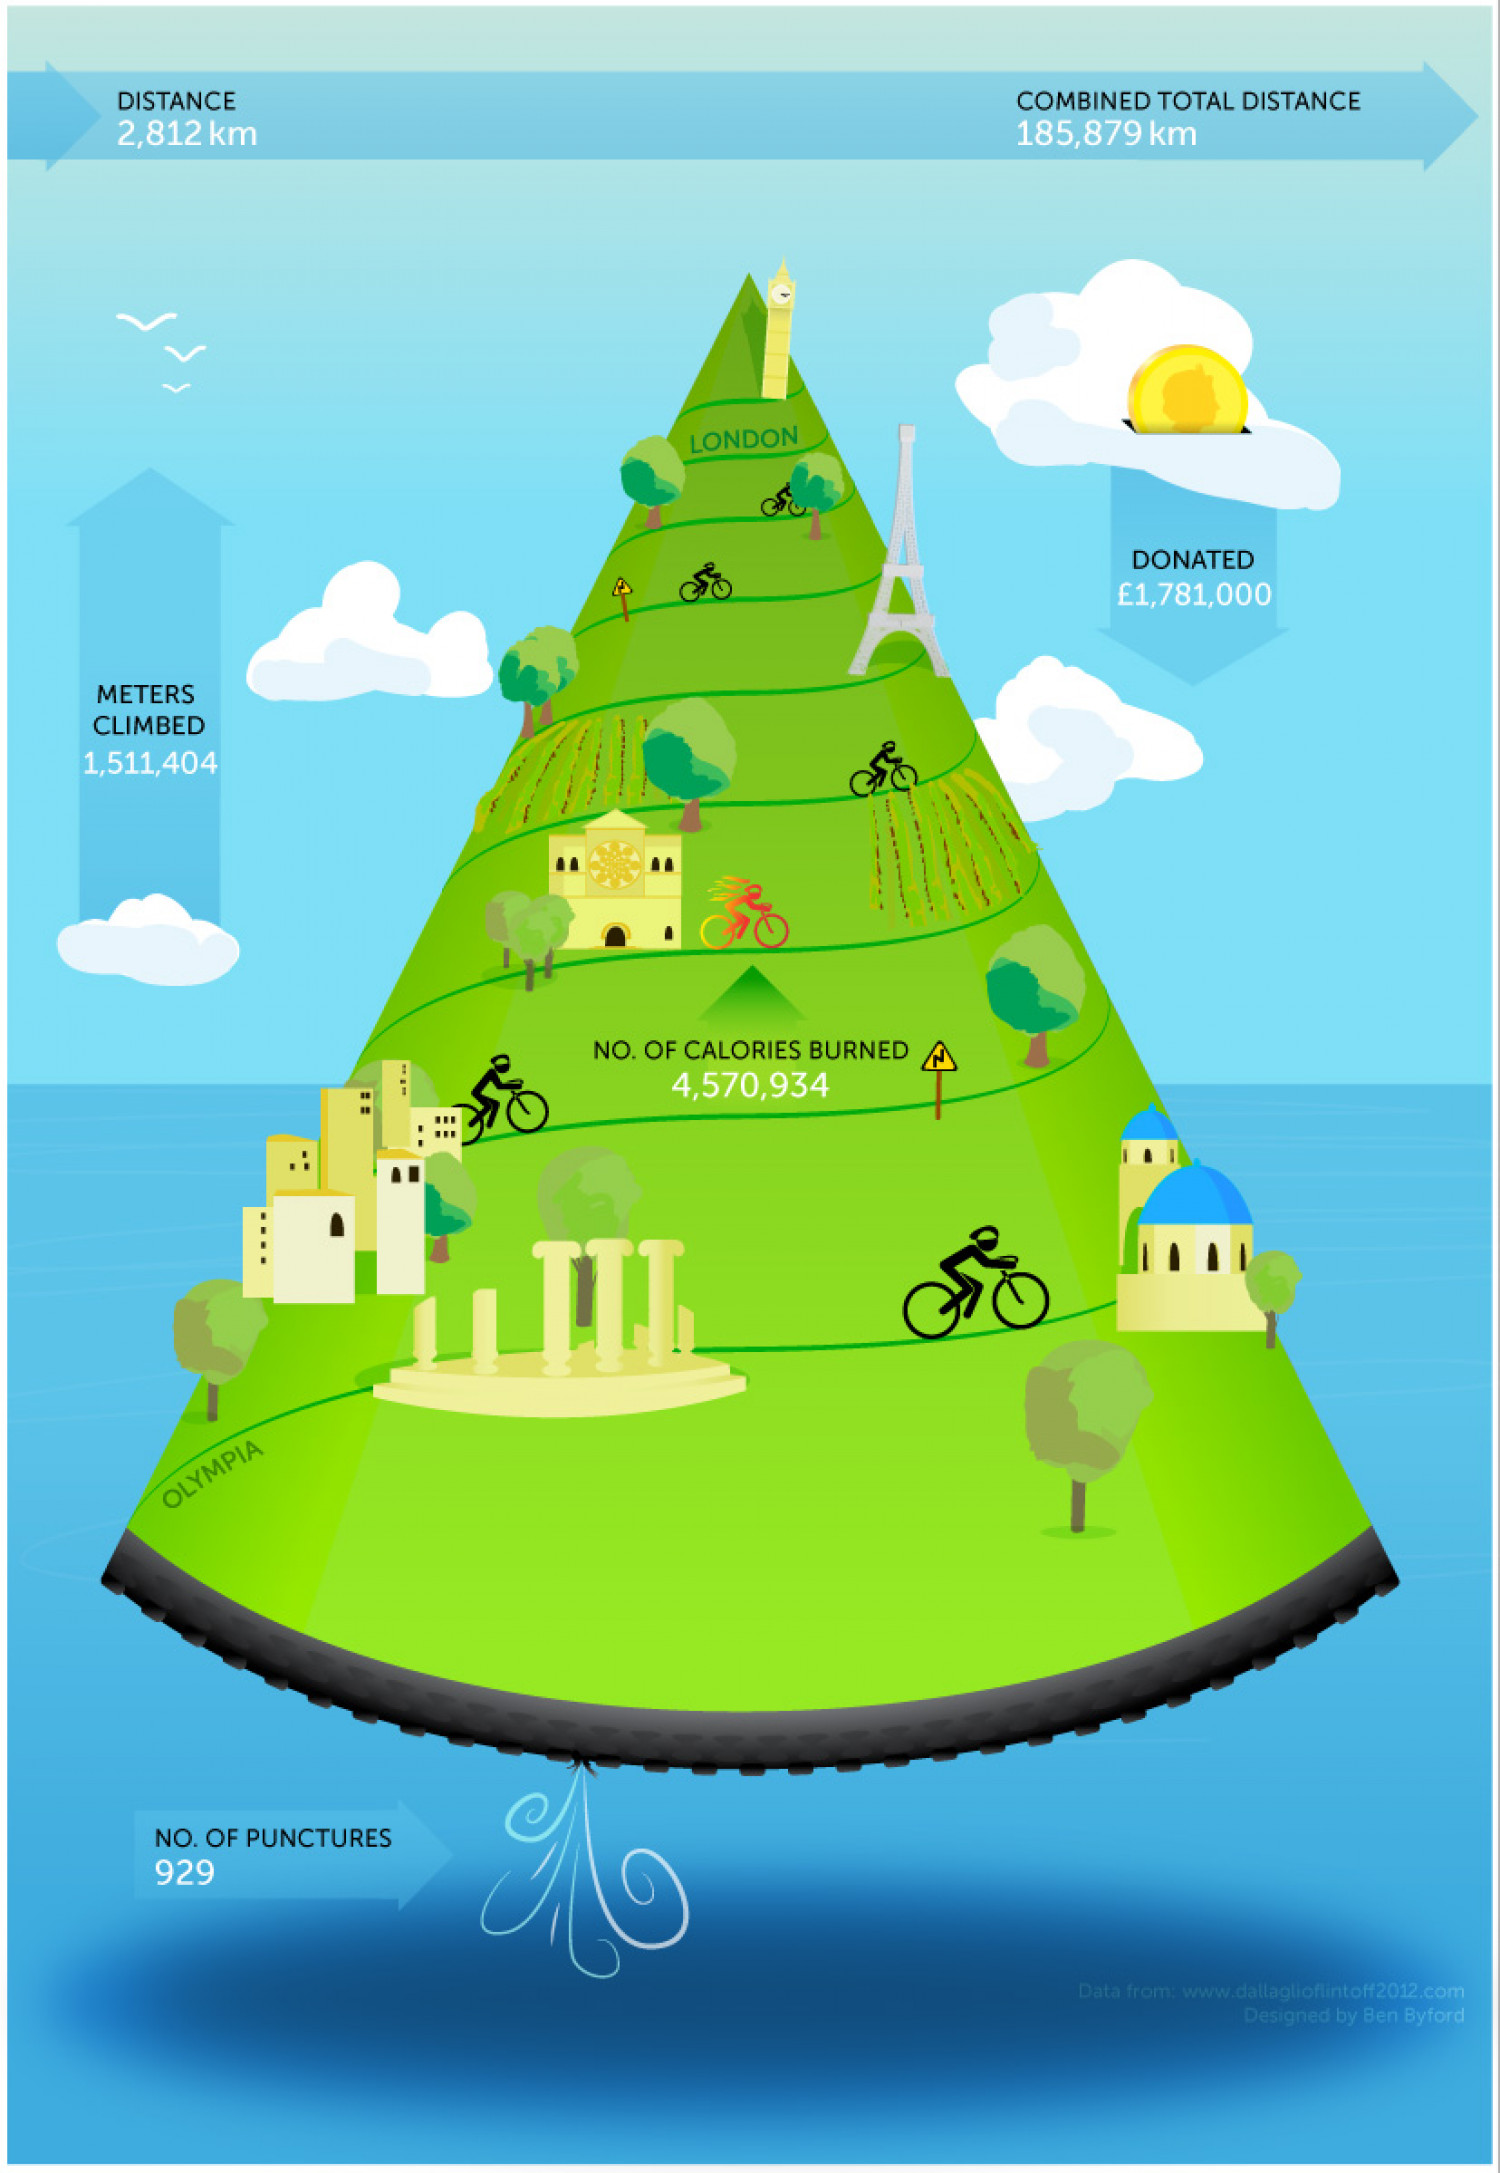 CycleSlam 2012 Infographic